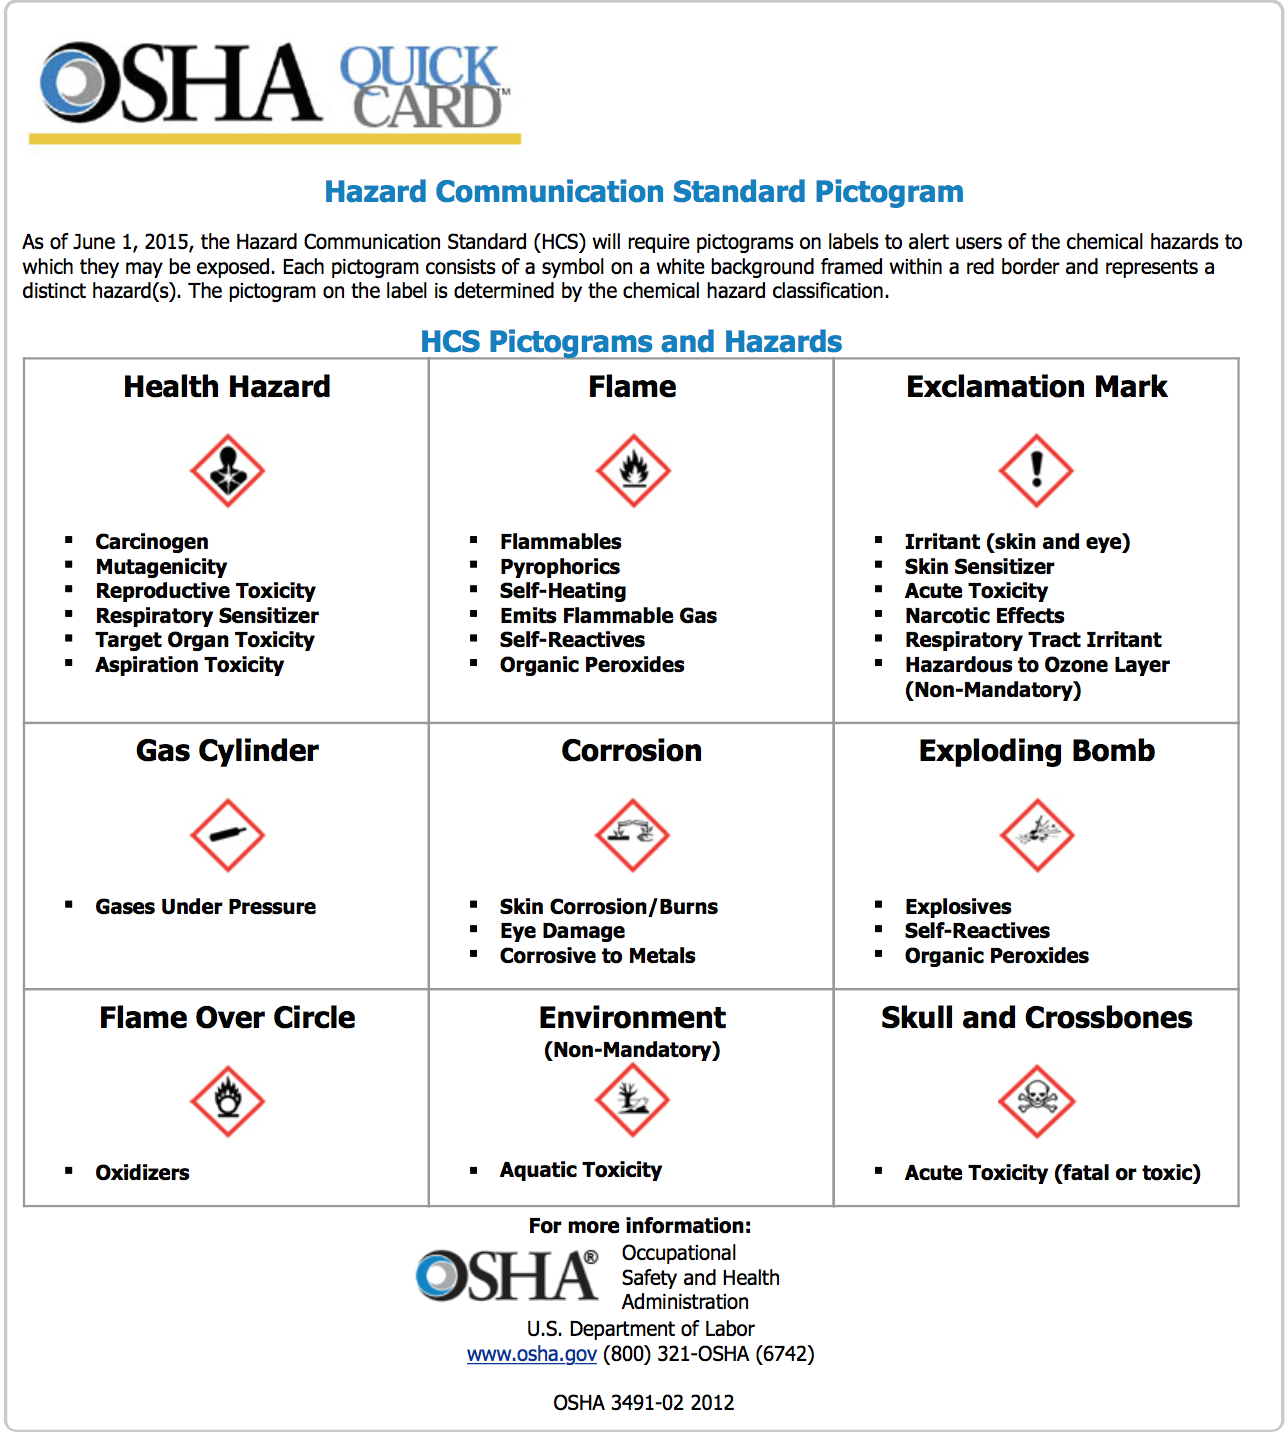 OSHA Quick Card How to plan, Business plan template free